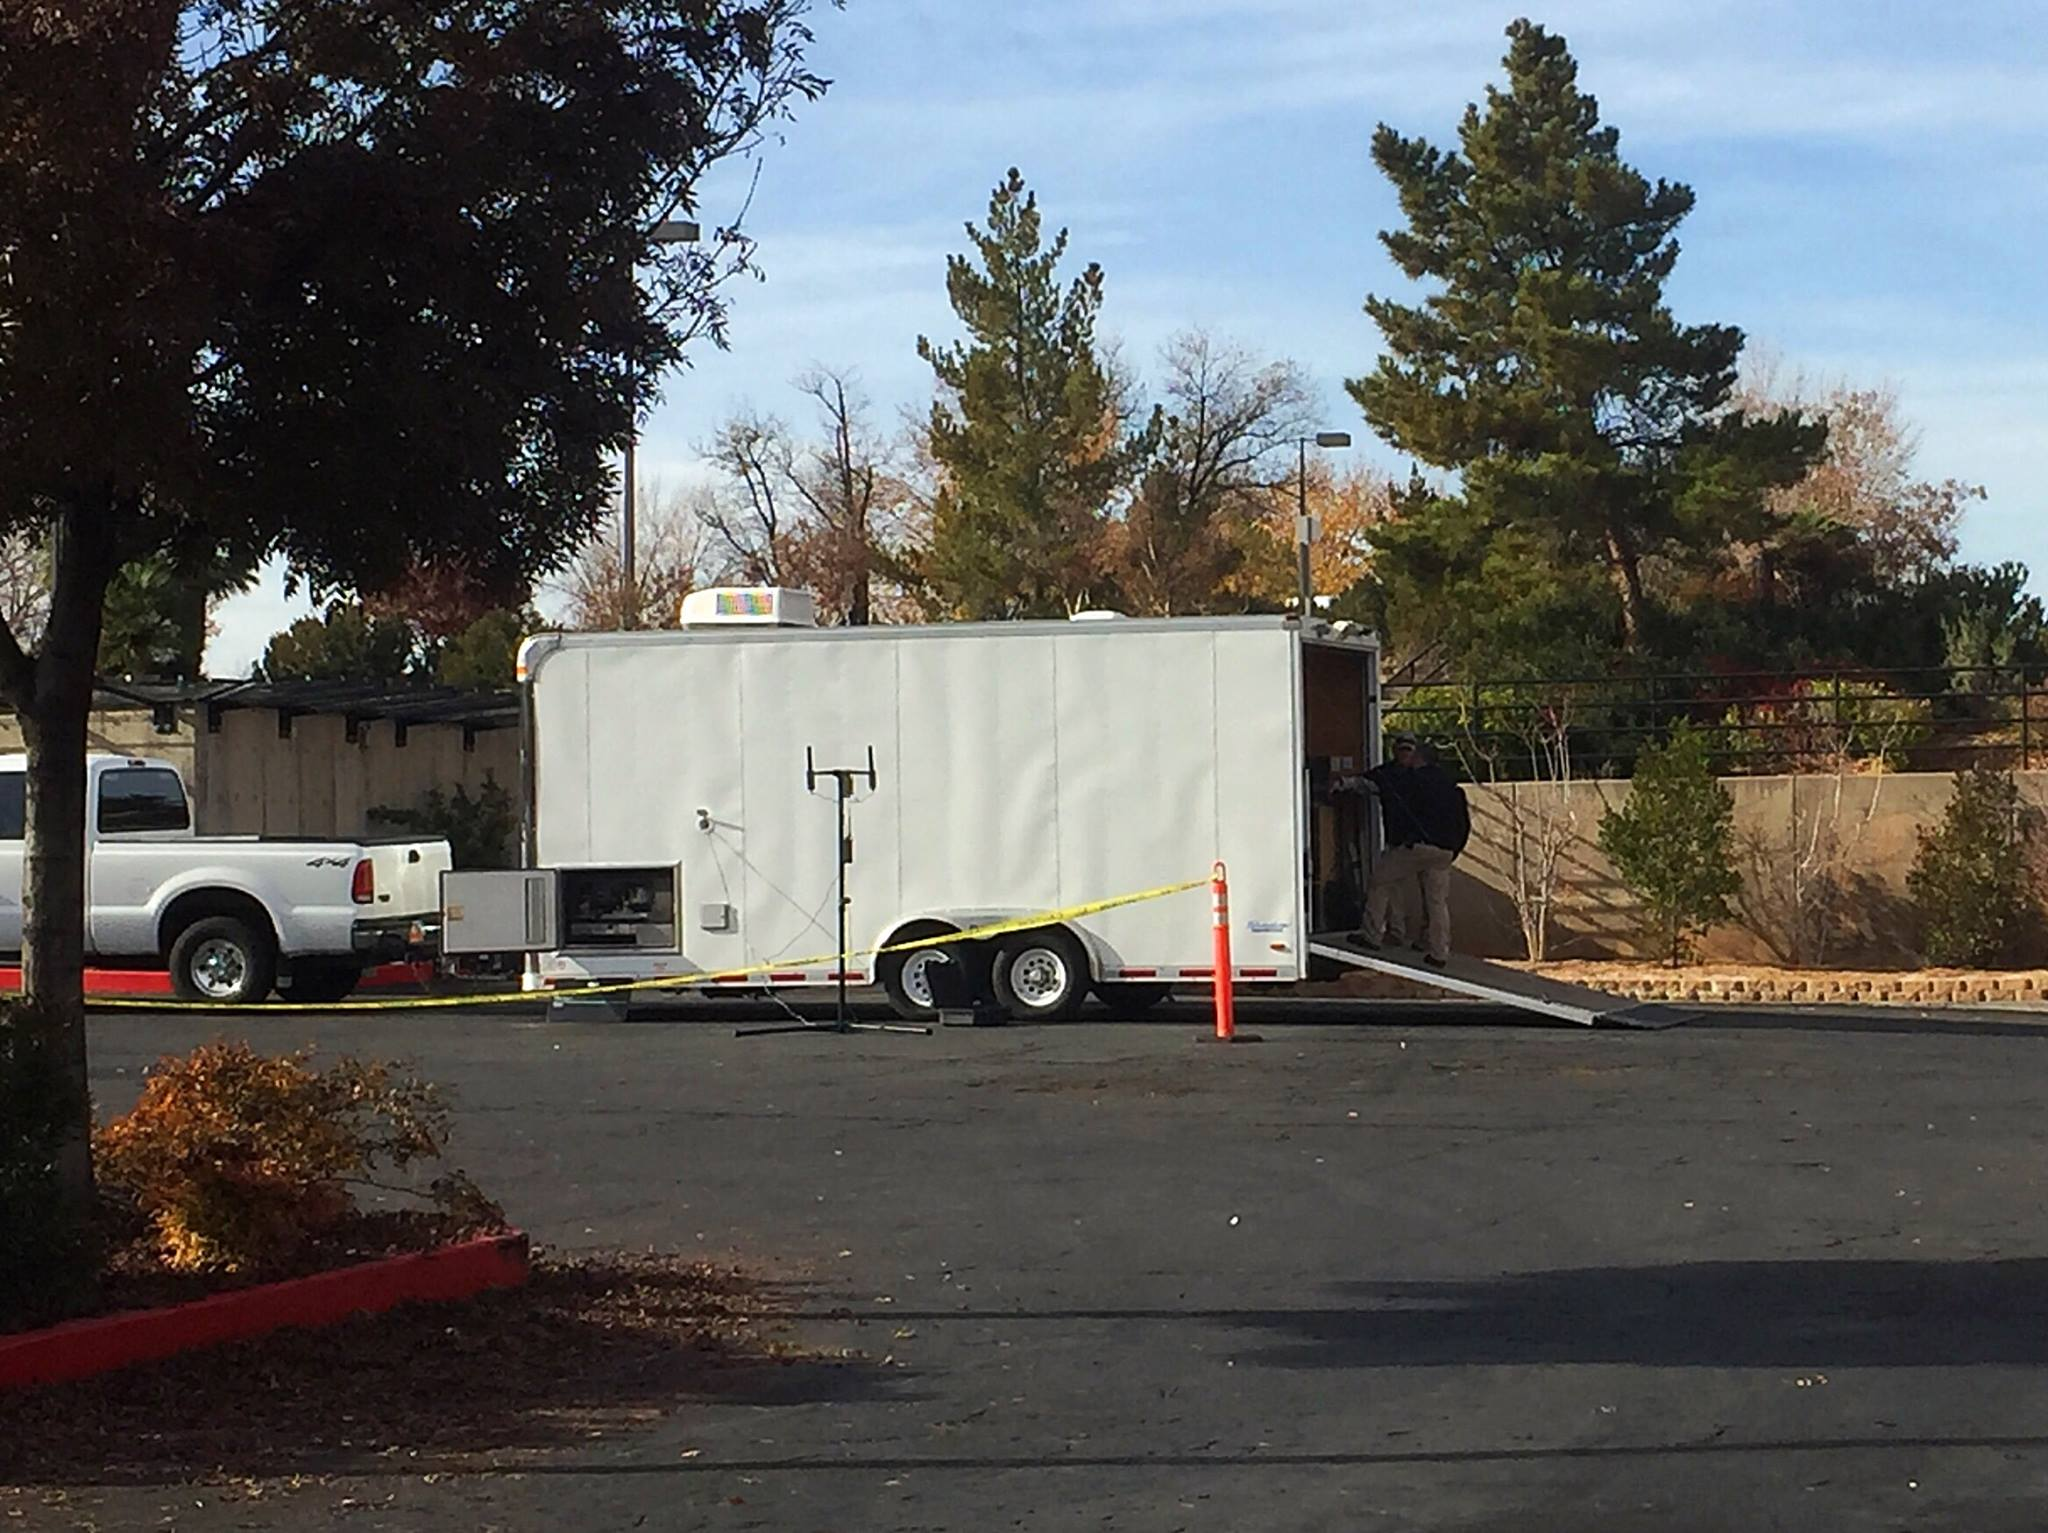 """Dixie Regional Medical Center teamed up with the St. George Police Department and Southern Utah Bomb Squad to participate in a bomb threat emergency drill that included a mock scenario involving a """"suspicious package"""" found on hospital grounds, St. George, Utah, Dec. 14, 2016 